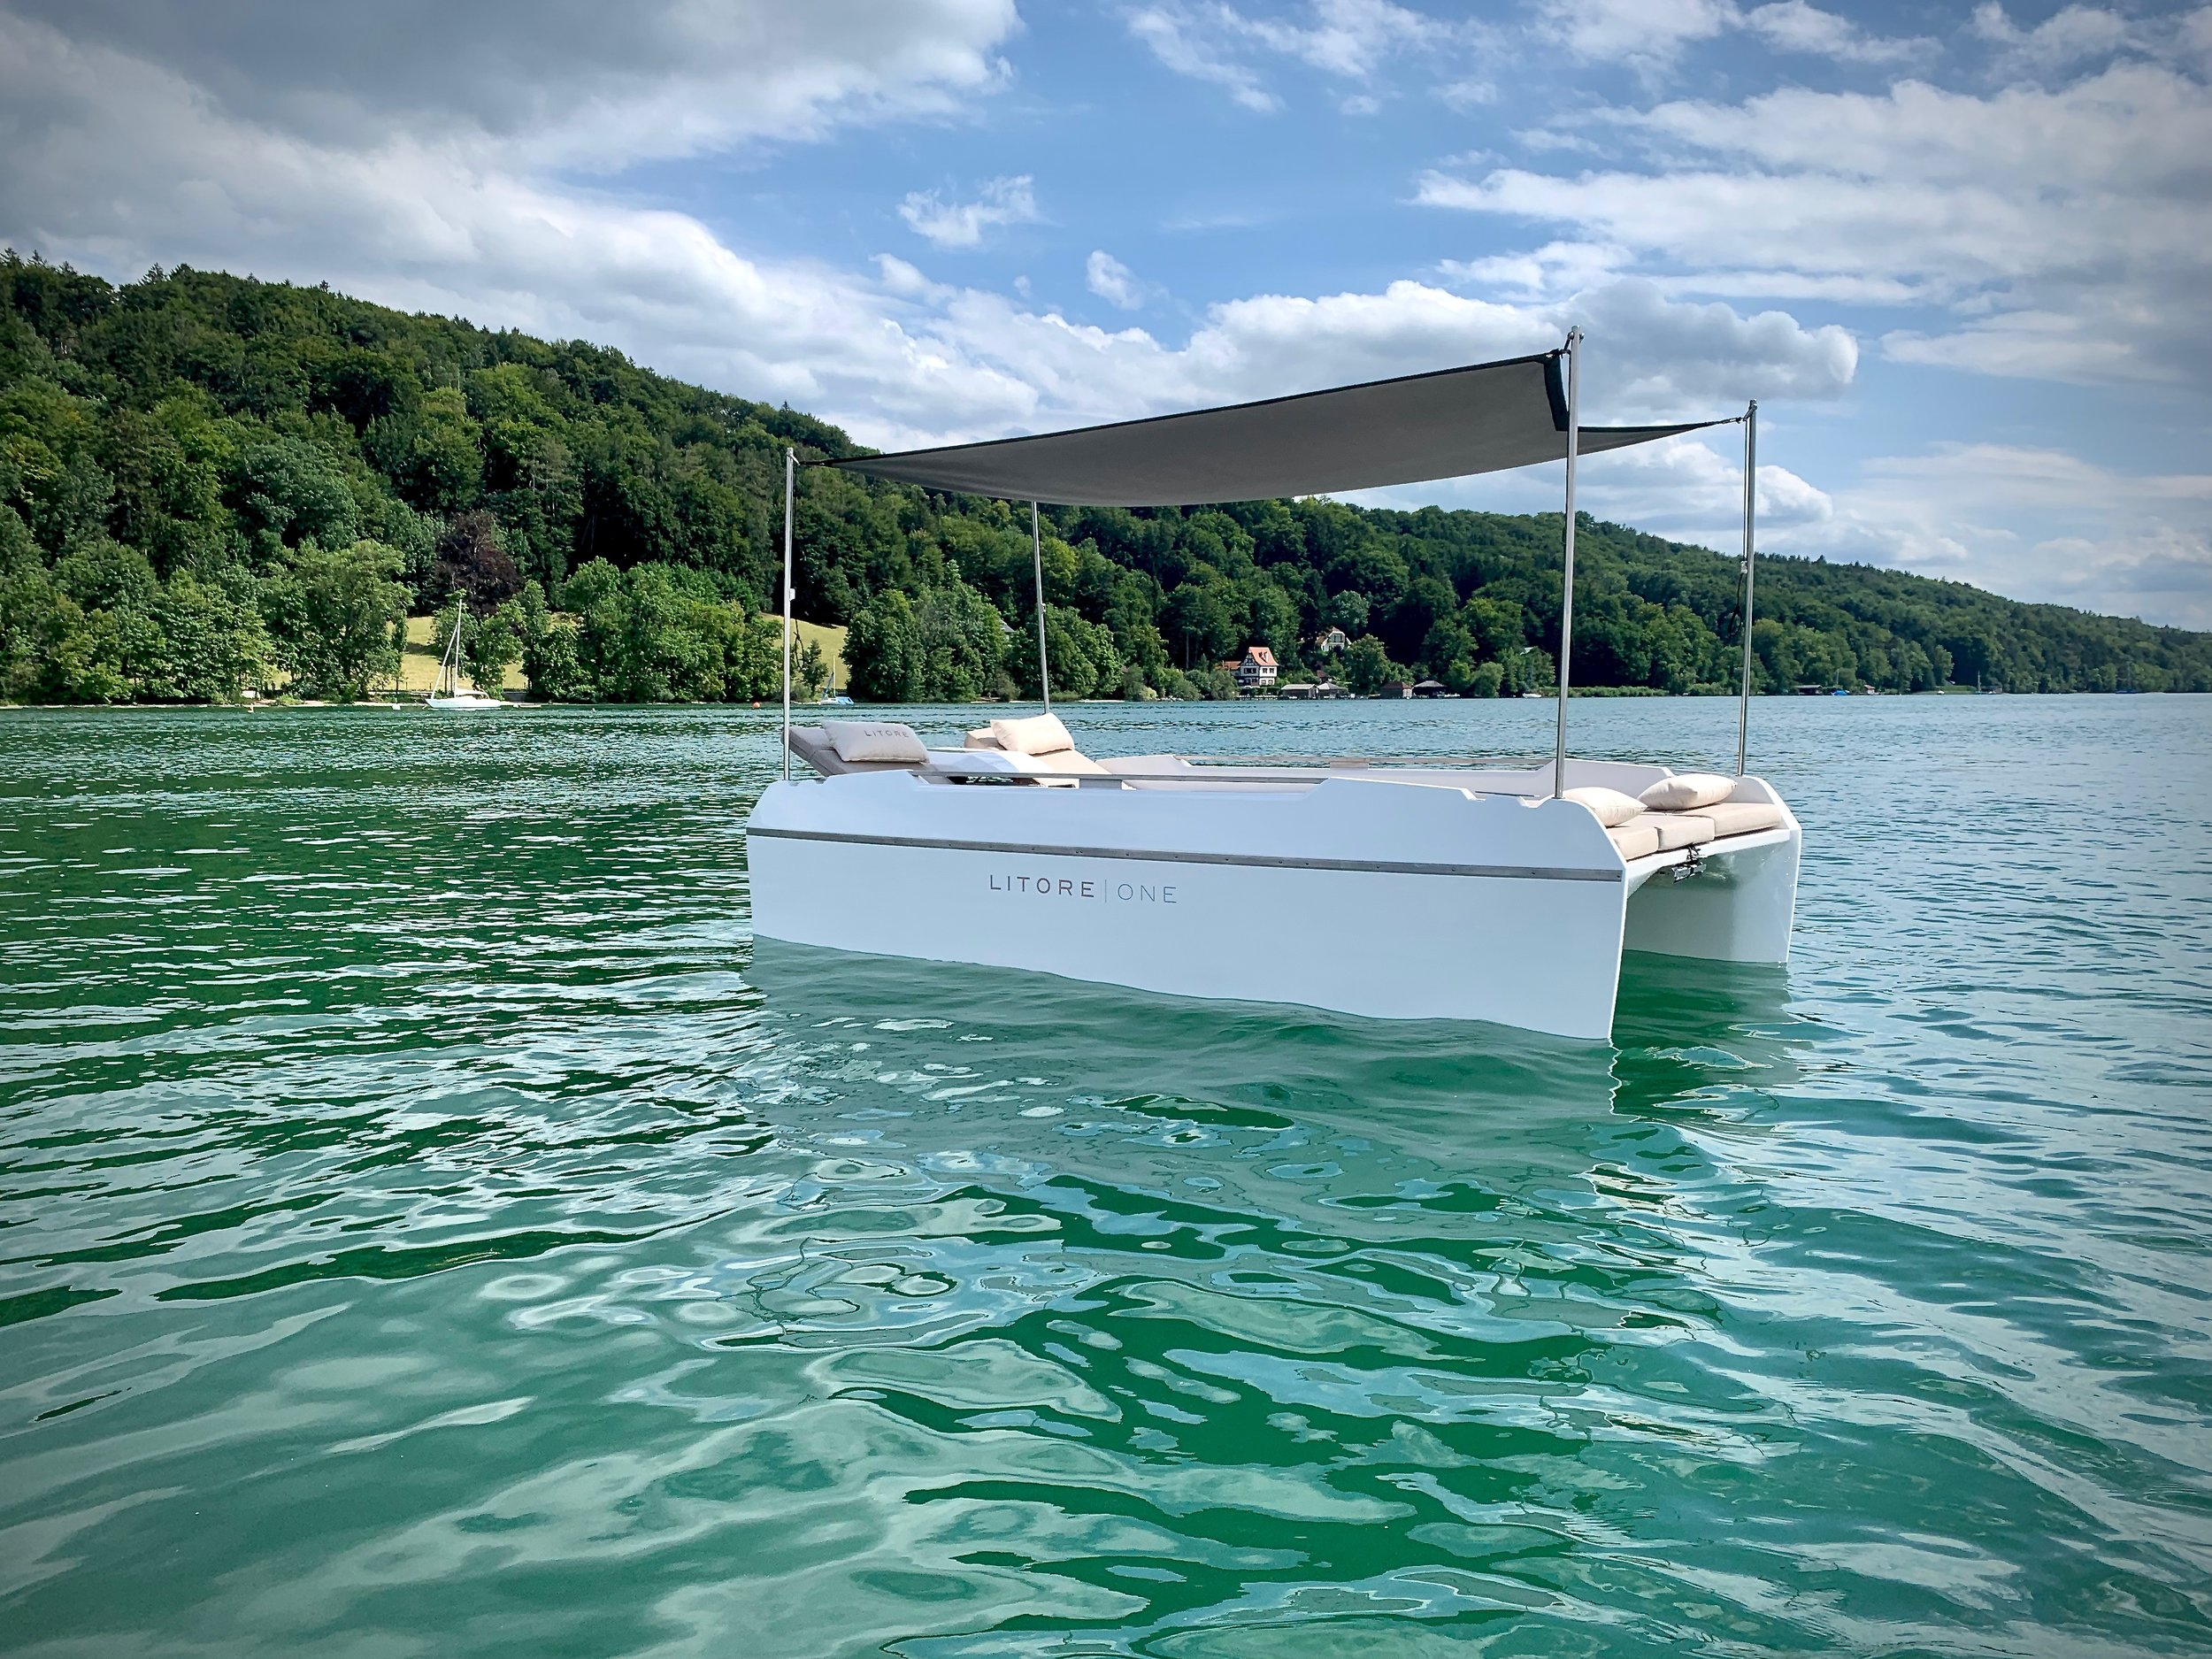 INTRODUCING LITORE ONE - Litore one is the first electric day-cruiser powered by Torqeedo Travel motor. The elegant multihull combines the space and comfort up to 5 people with a range suitable for everyday use, catapulting the passengers into a new era of easy boating.